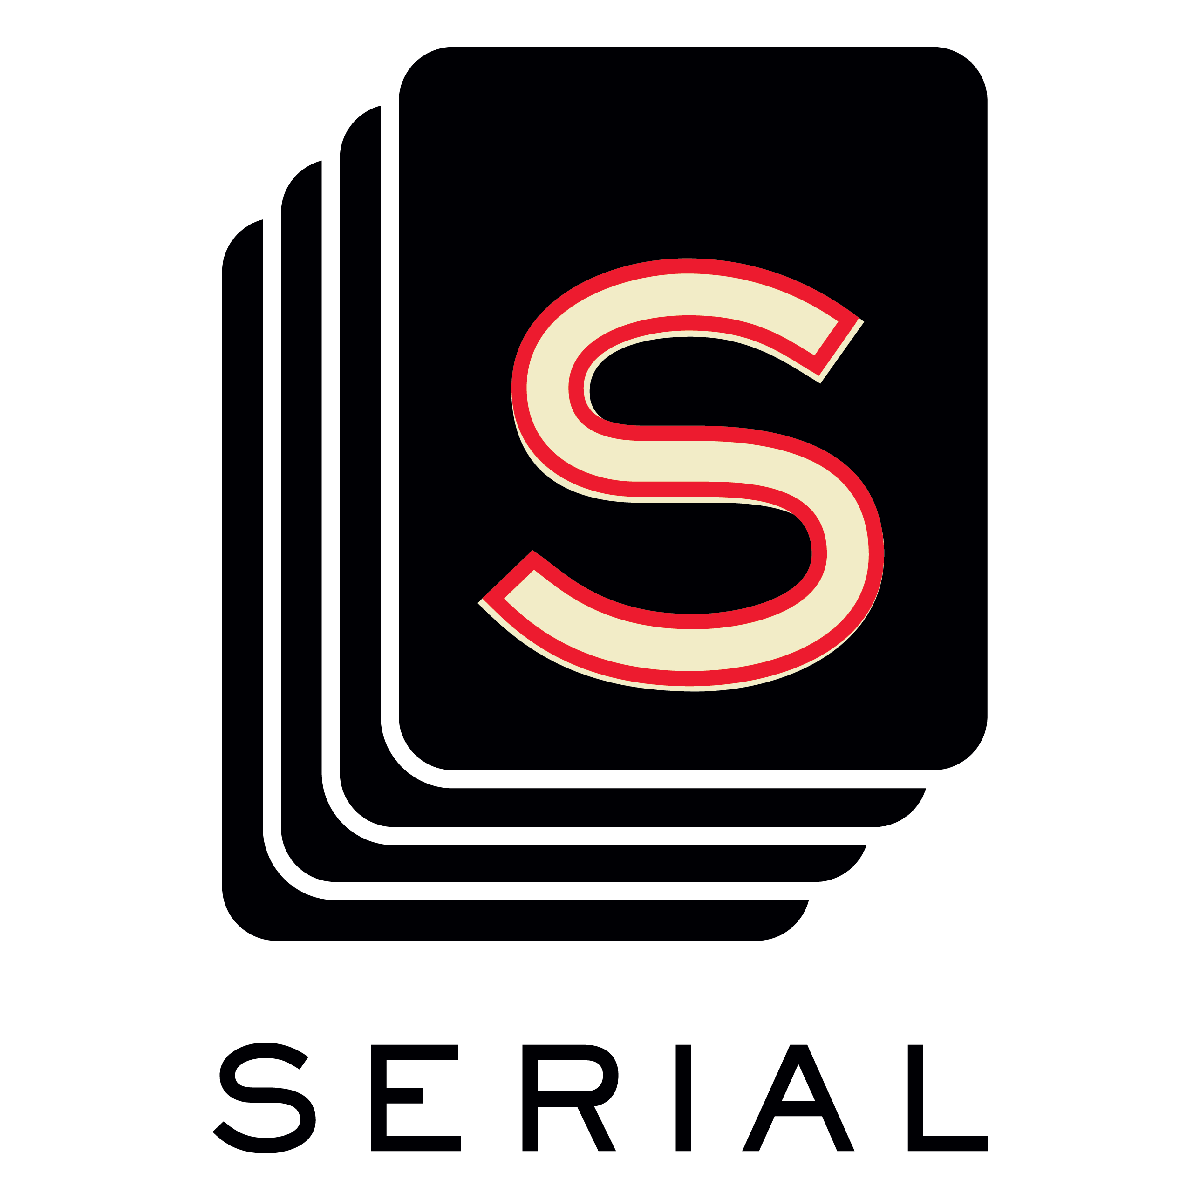 Star Wars spinoff directors bringing Serial to cable TV